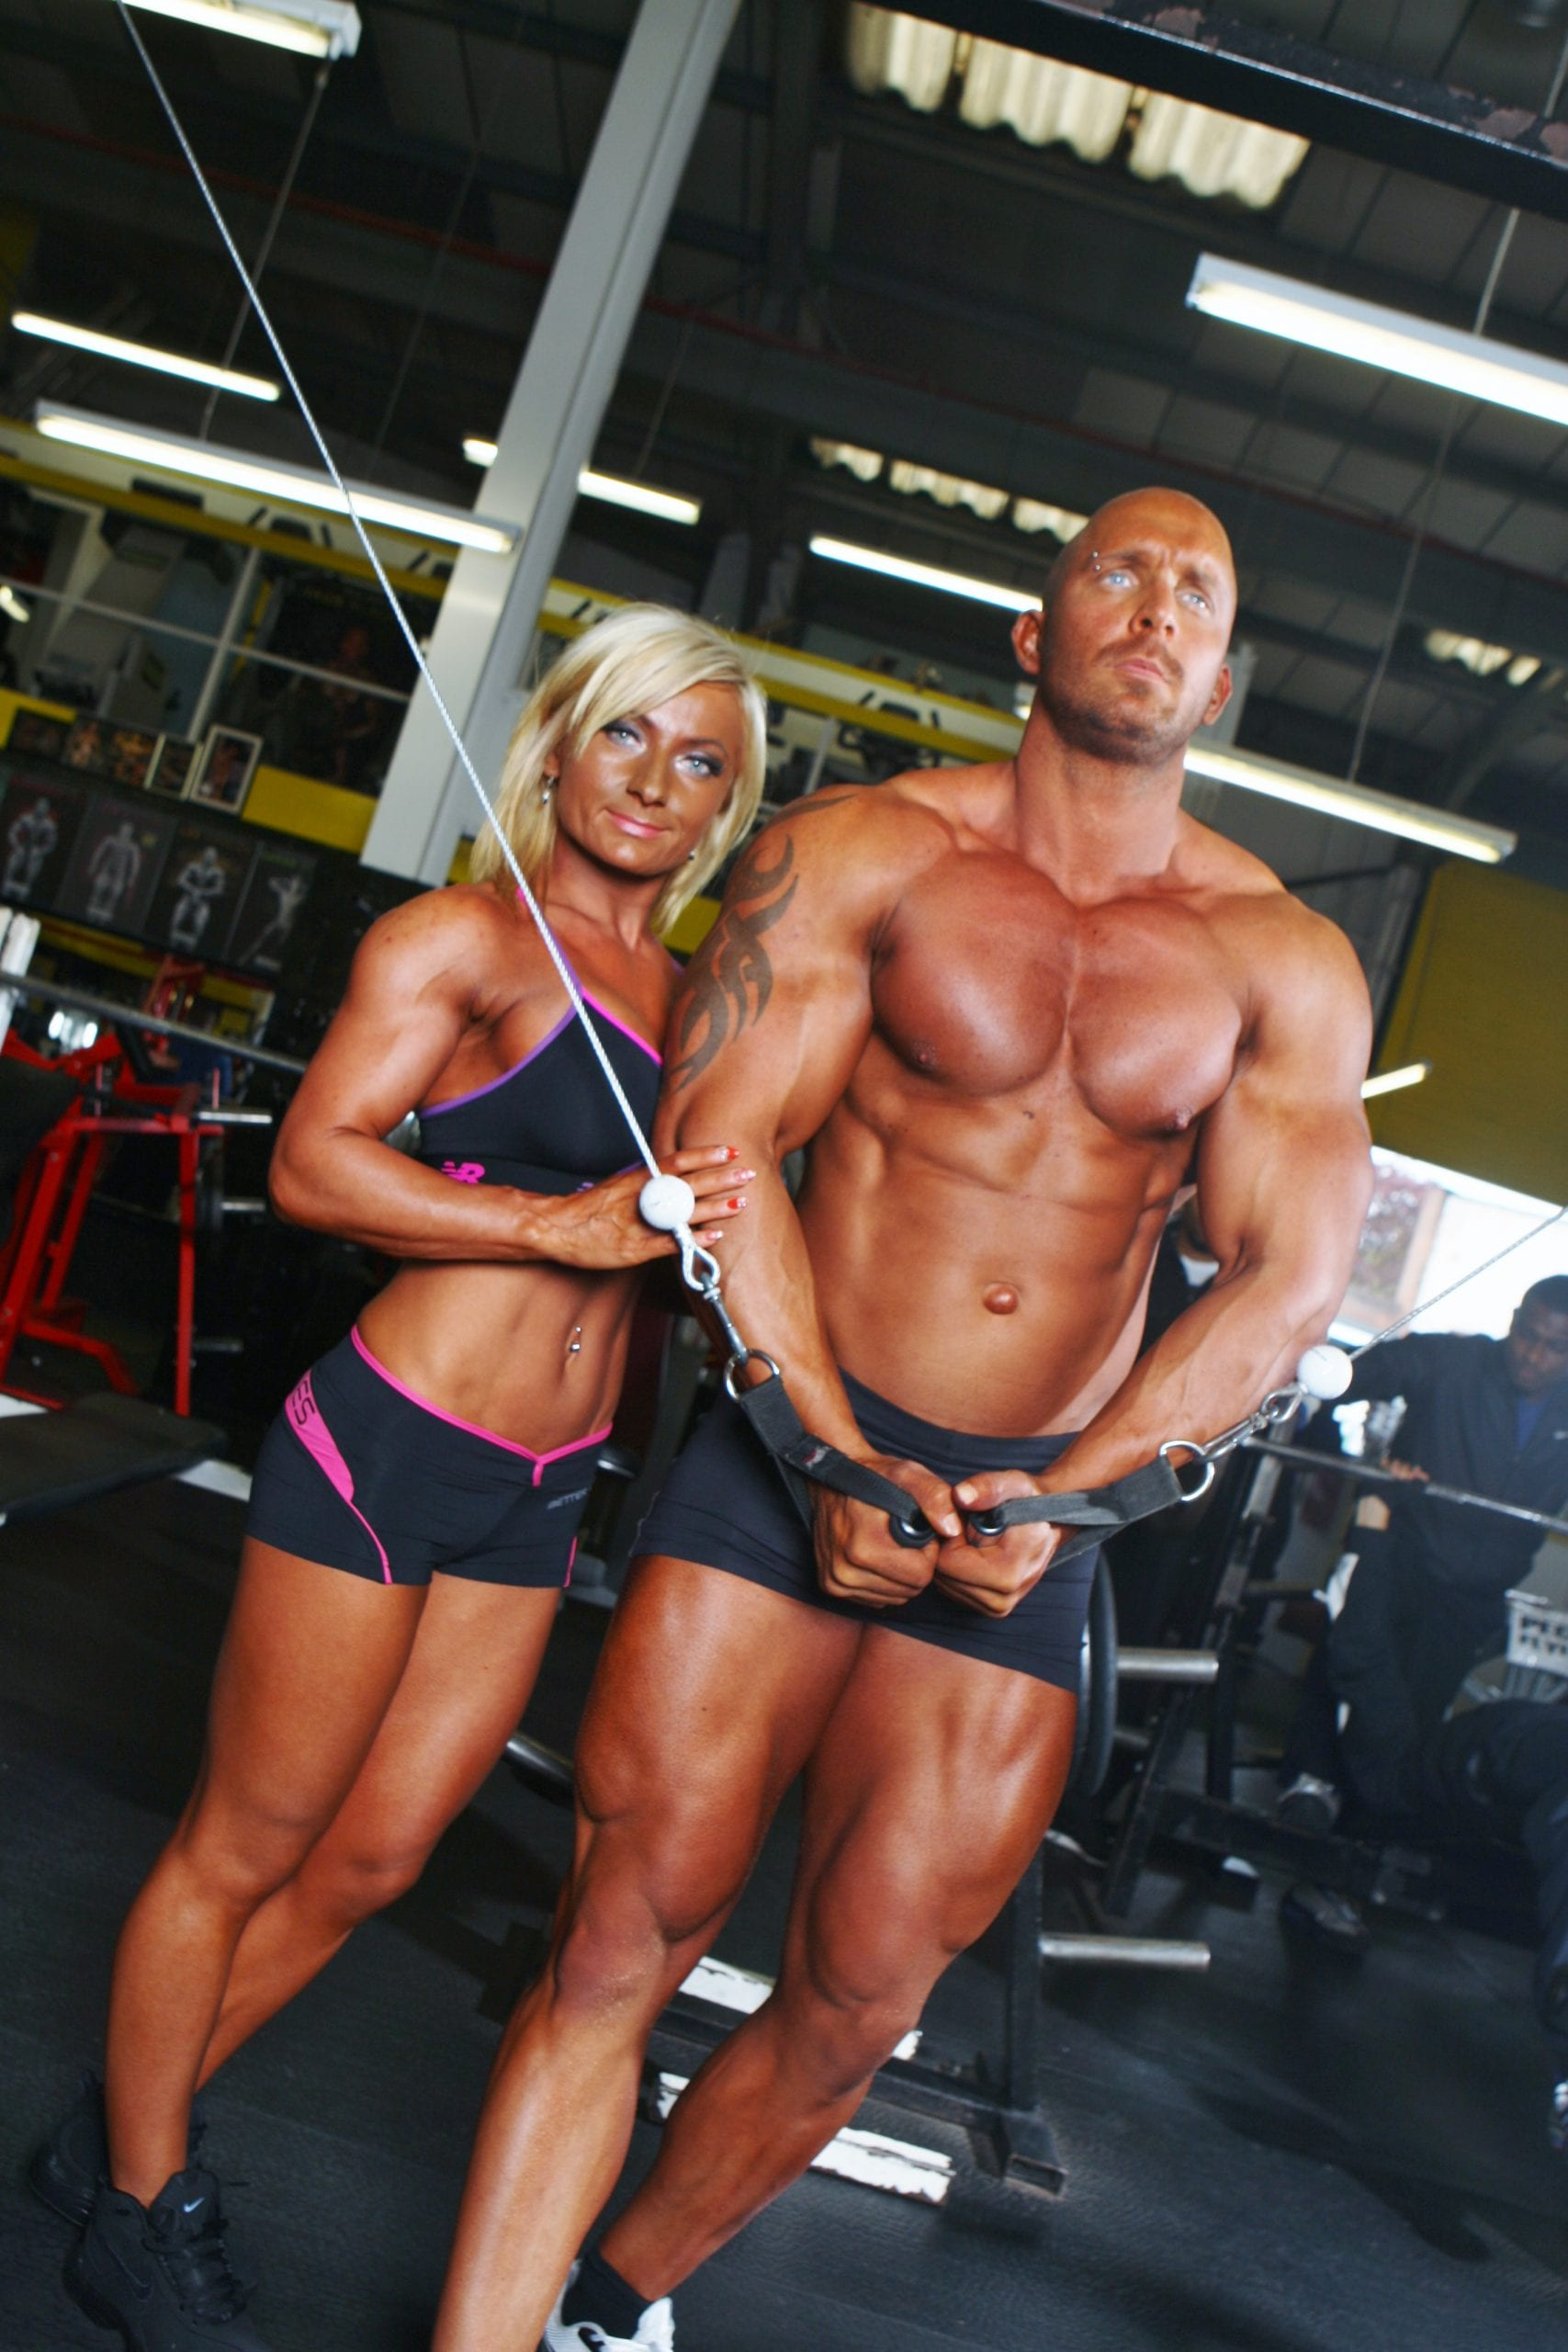 Bodybuilding & Fitness and Cosmetic Surgery | Did Yo Have Any?